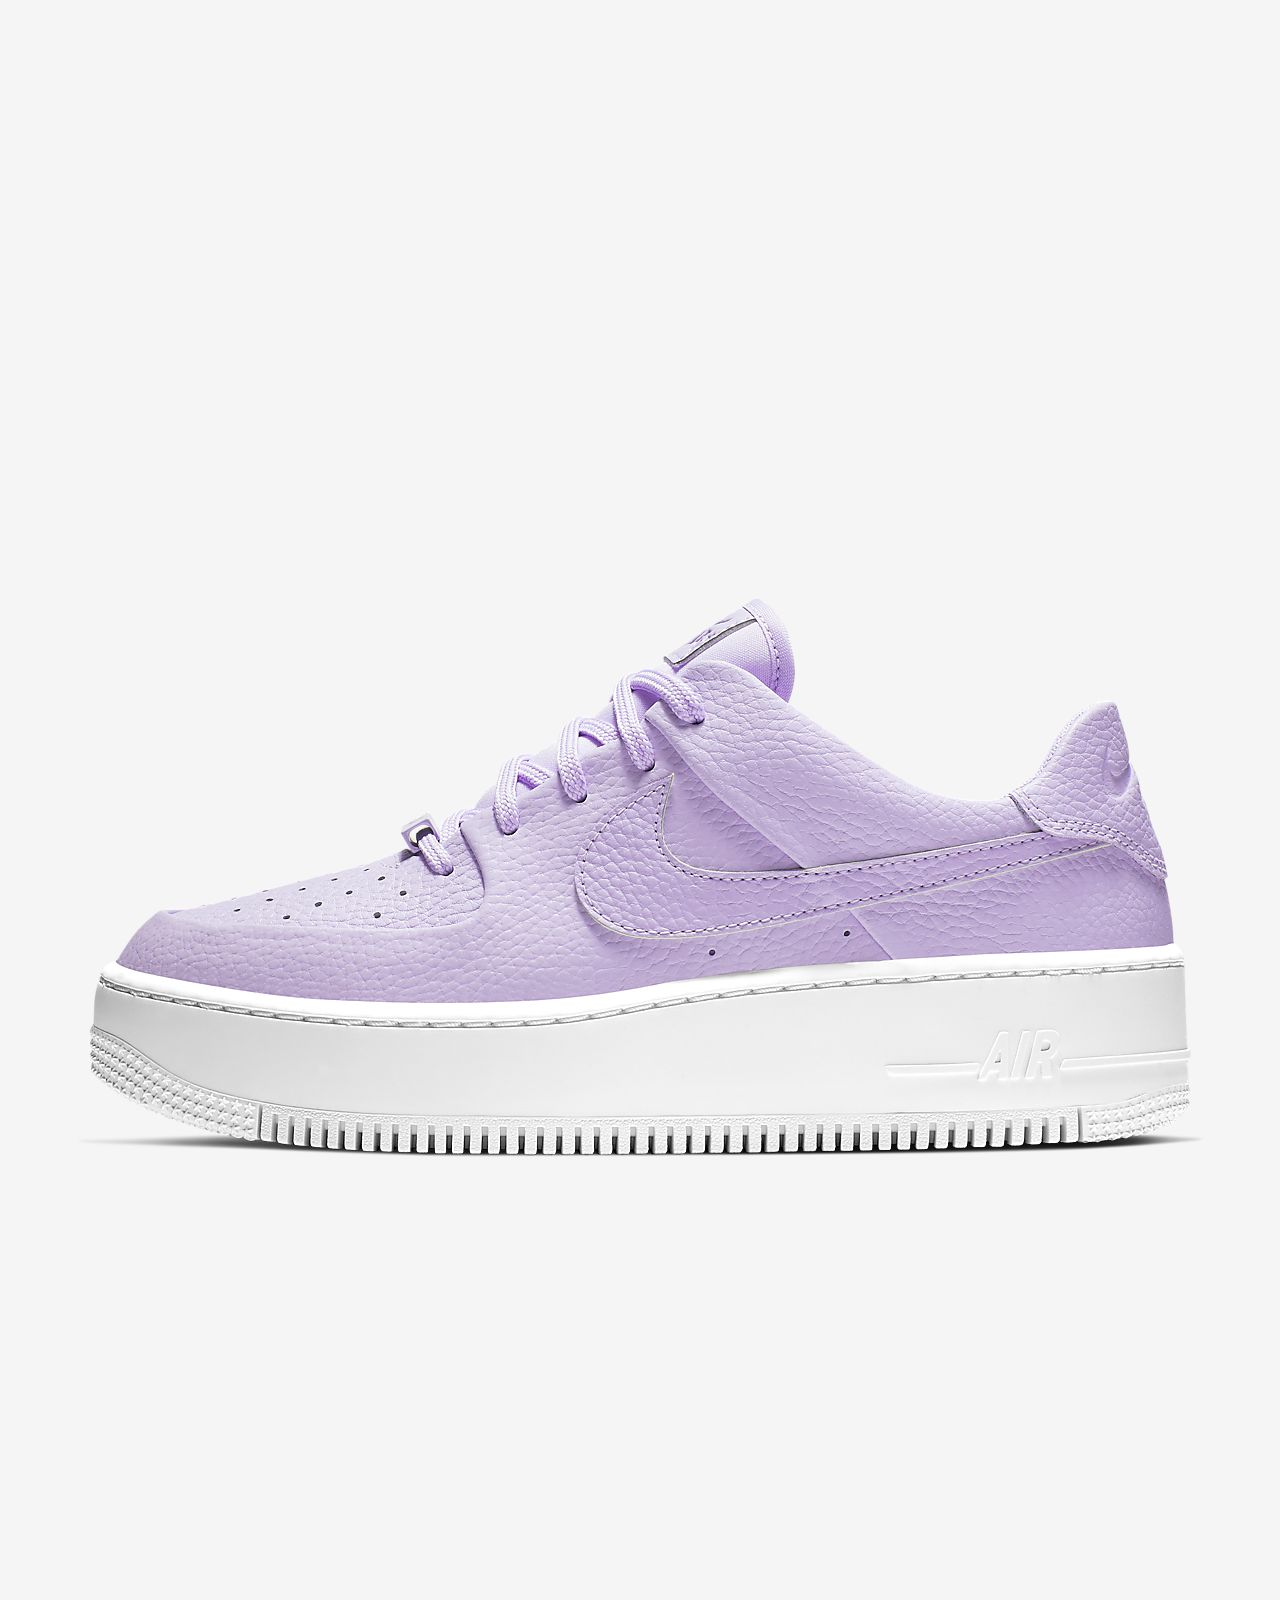 official photos 3ca32 06a8e ... Chaussure Nike Air Force 1 Sage Low pour Femme